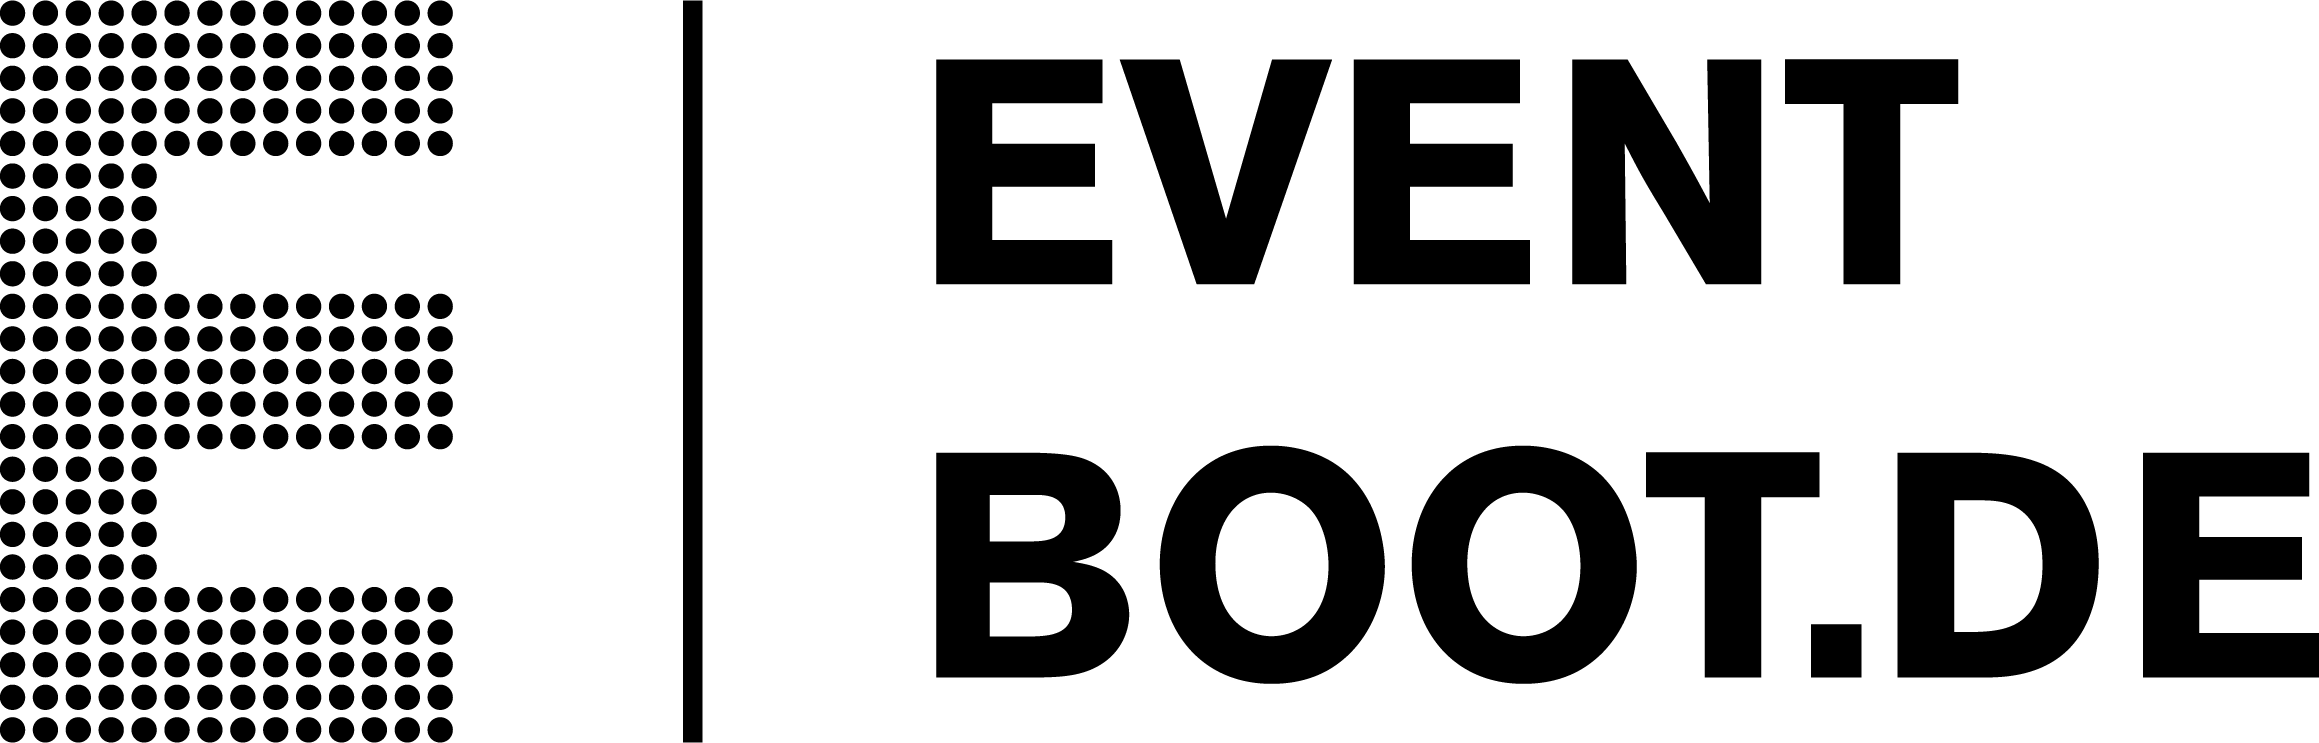 Eventboot